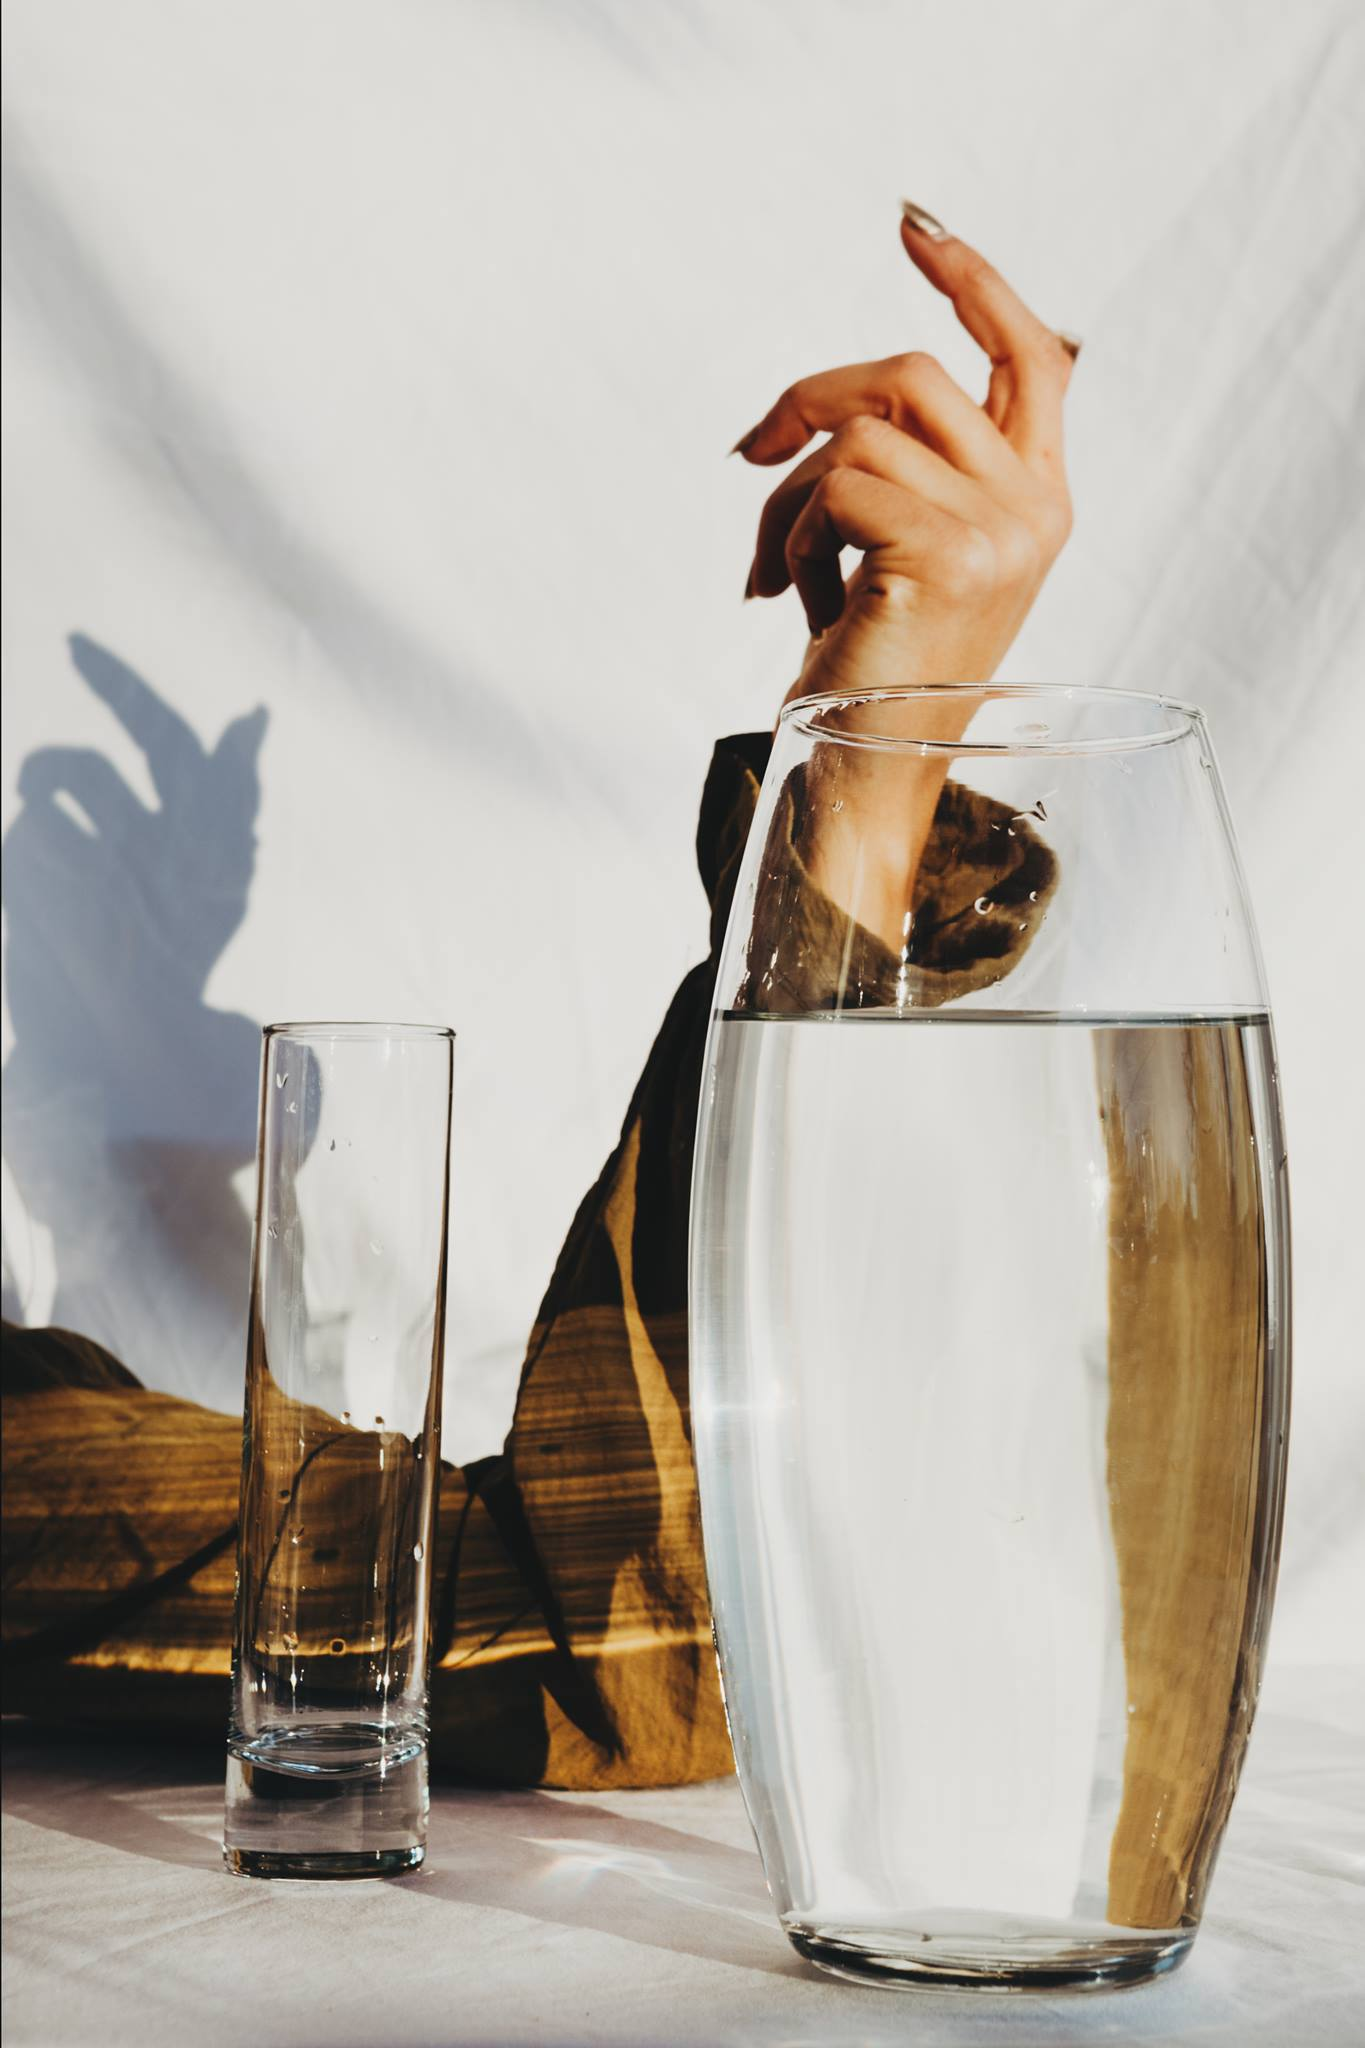 hand golden water abstract fine art photography